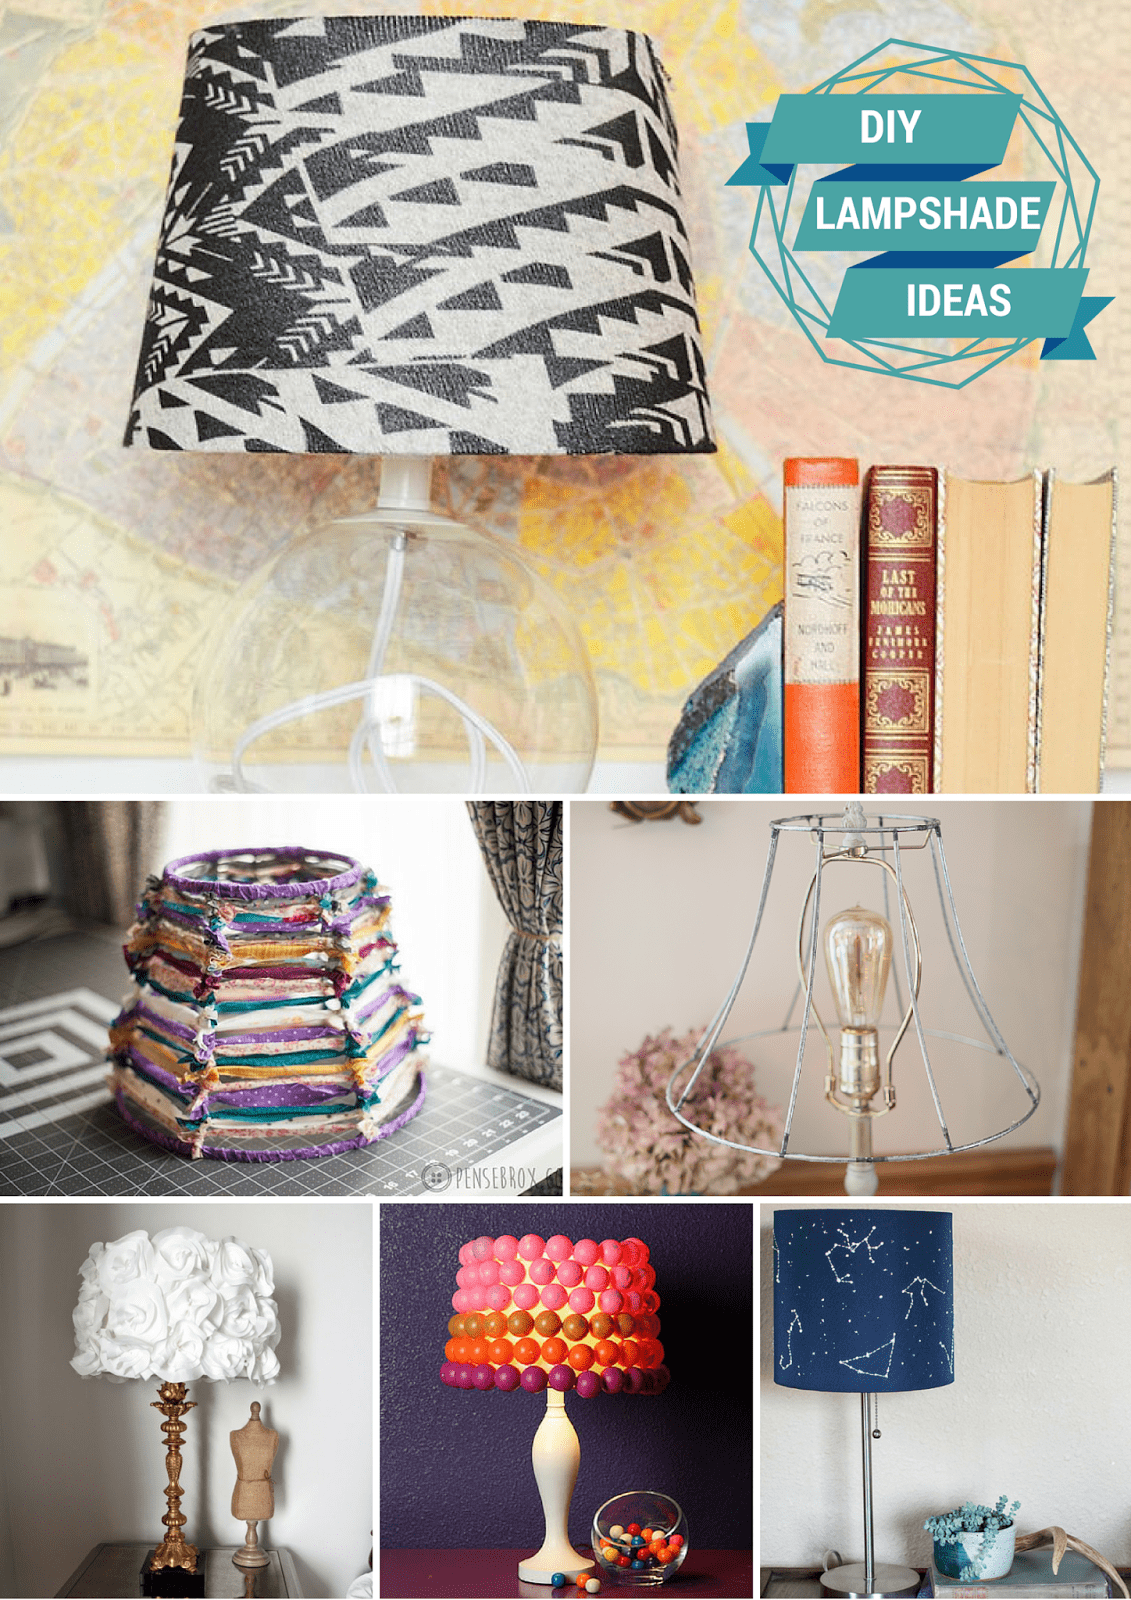 DIY Lampshade Ideas from MomAdvice.com